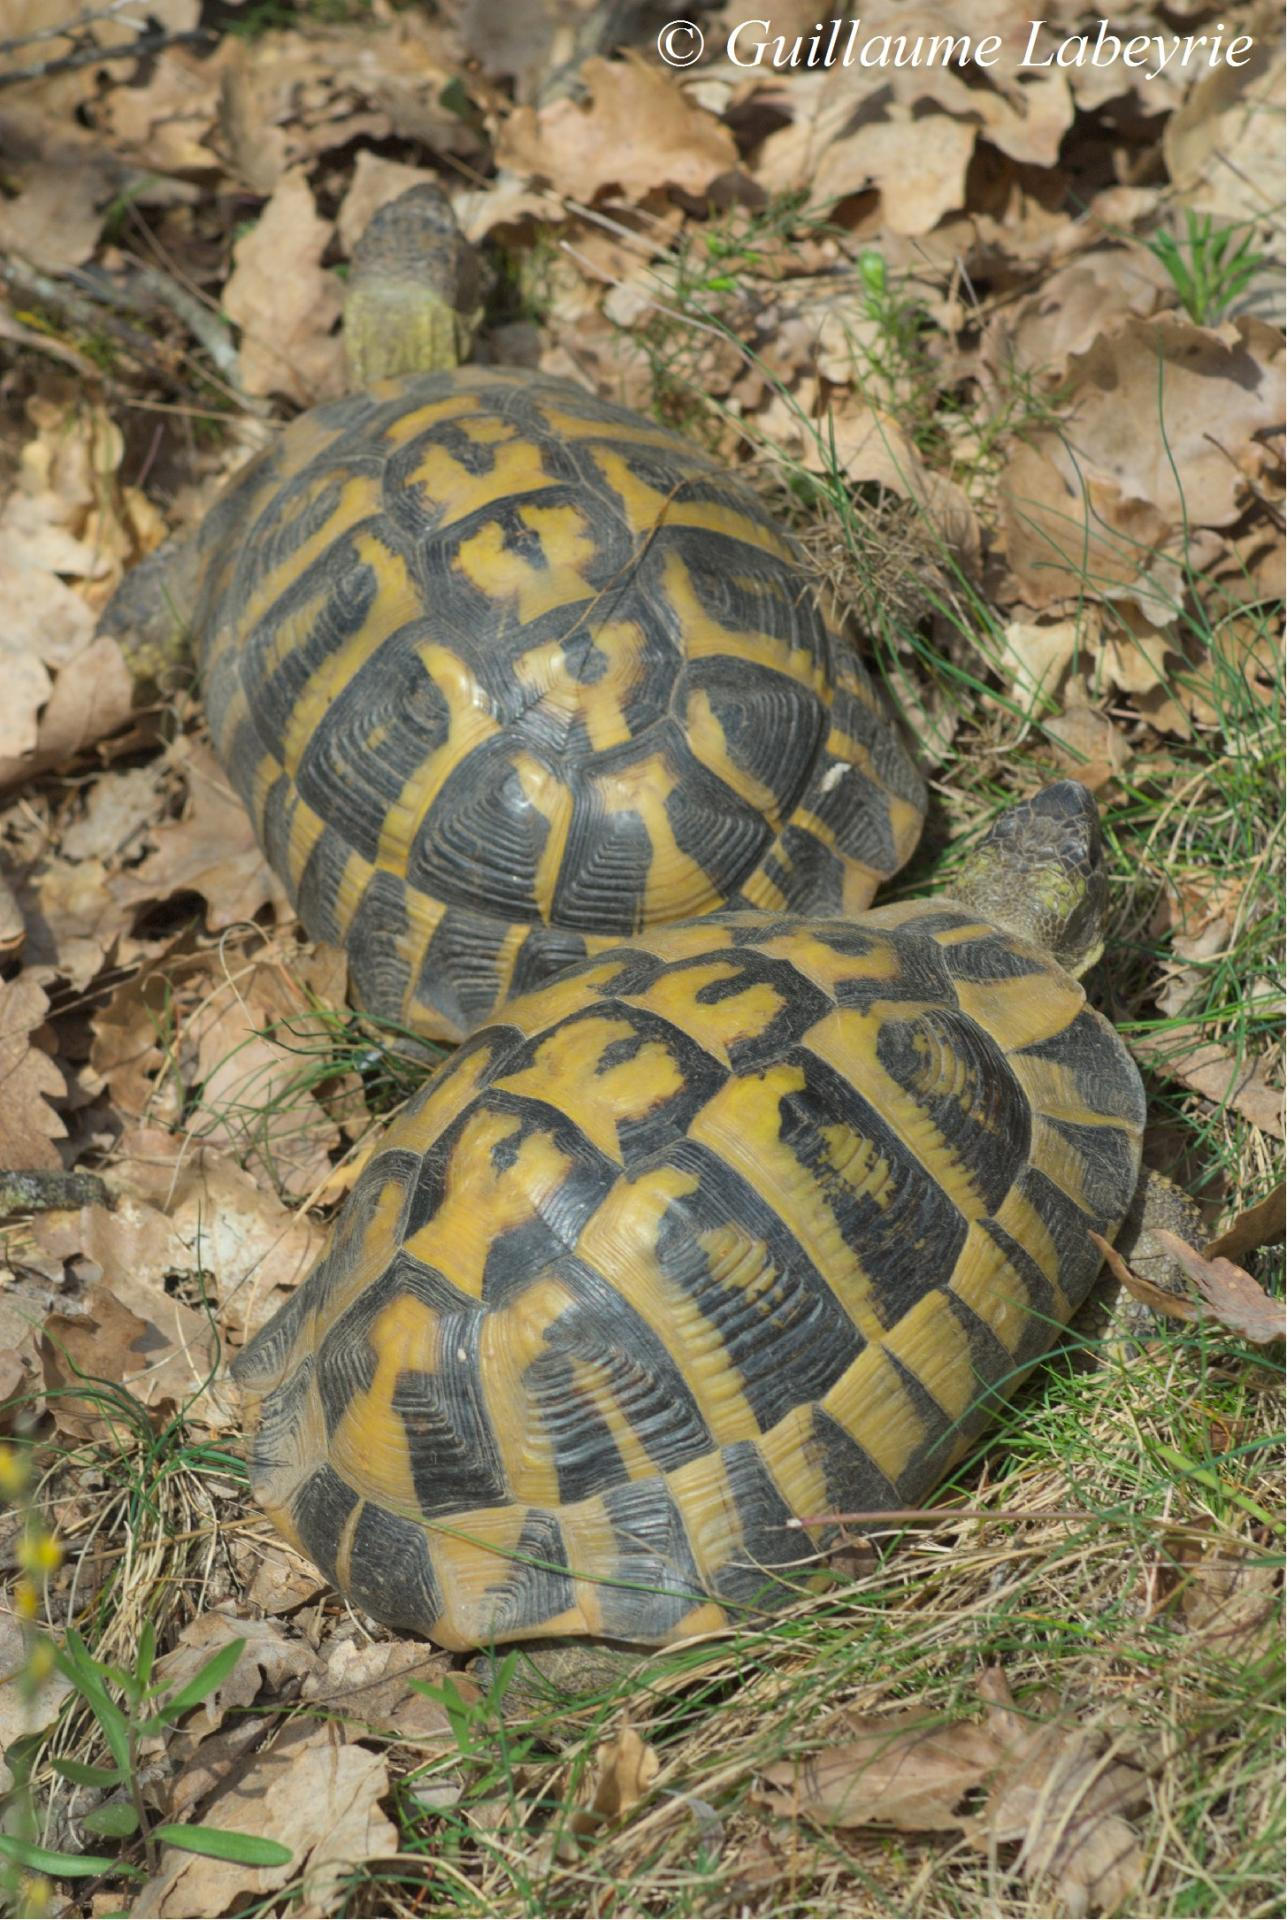 Hermann's tortoises in their habitat